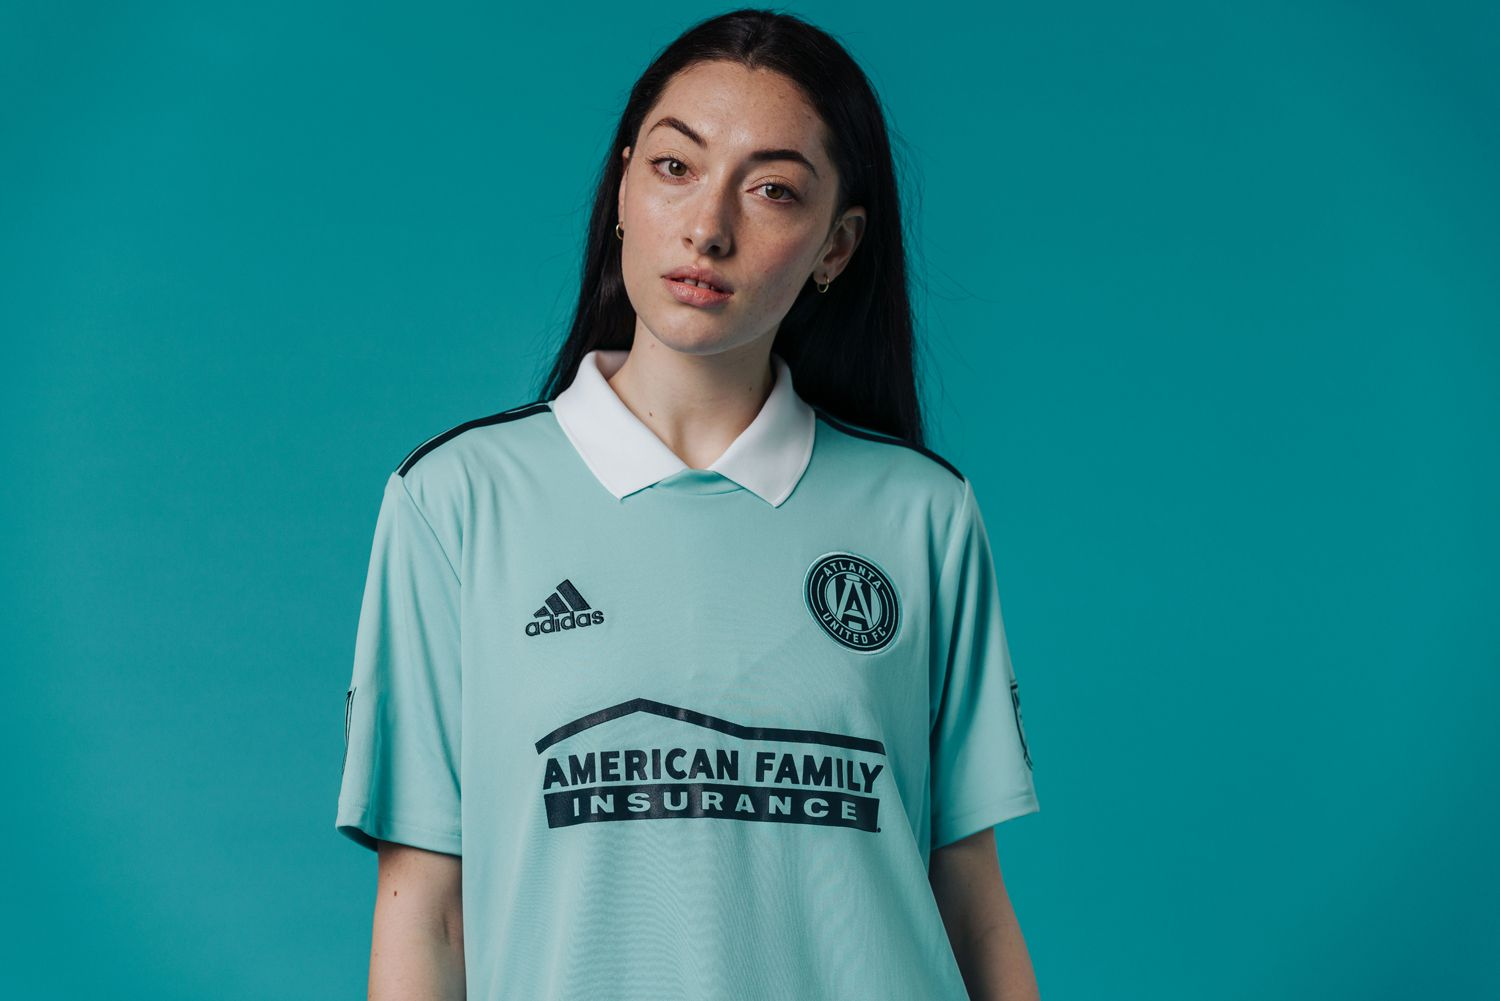 The 2019 Atlanta United Parley jersey.